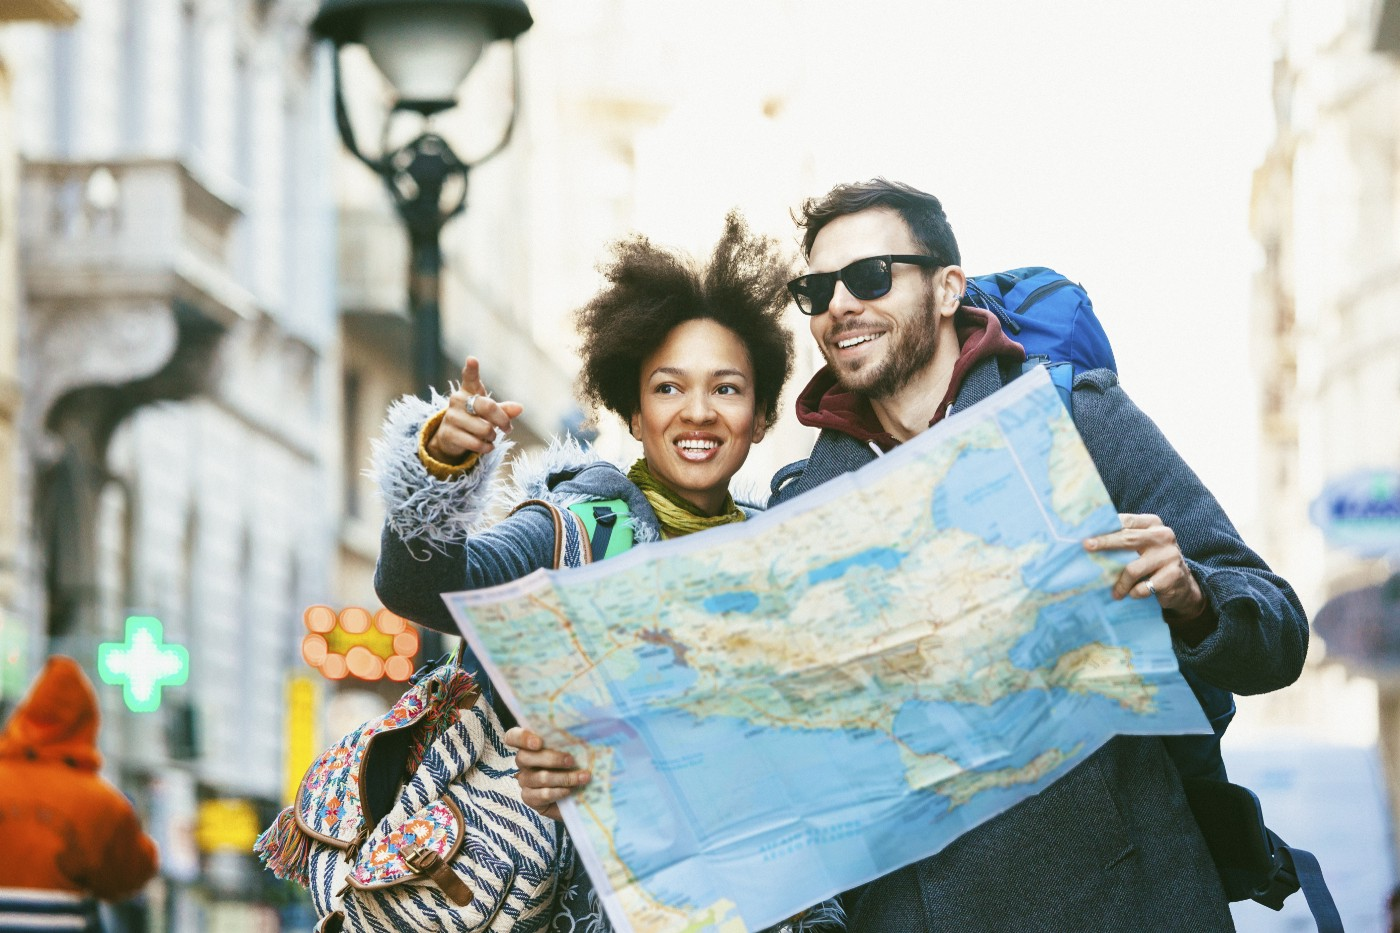 Stock photo of a young couple traveling and holding a map